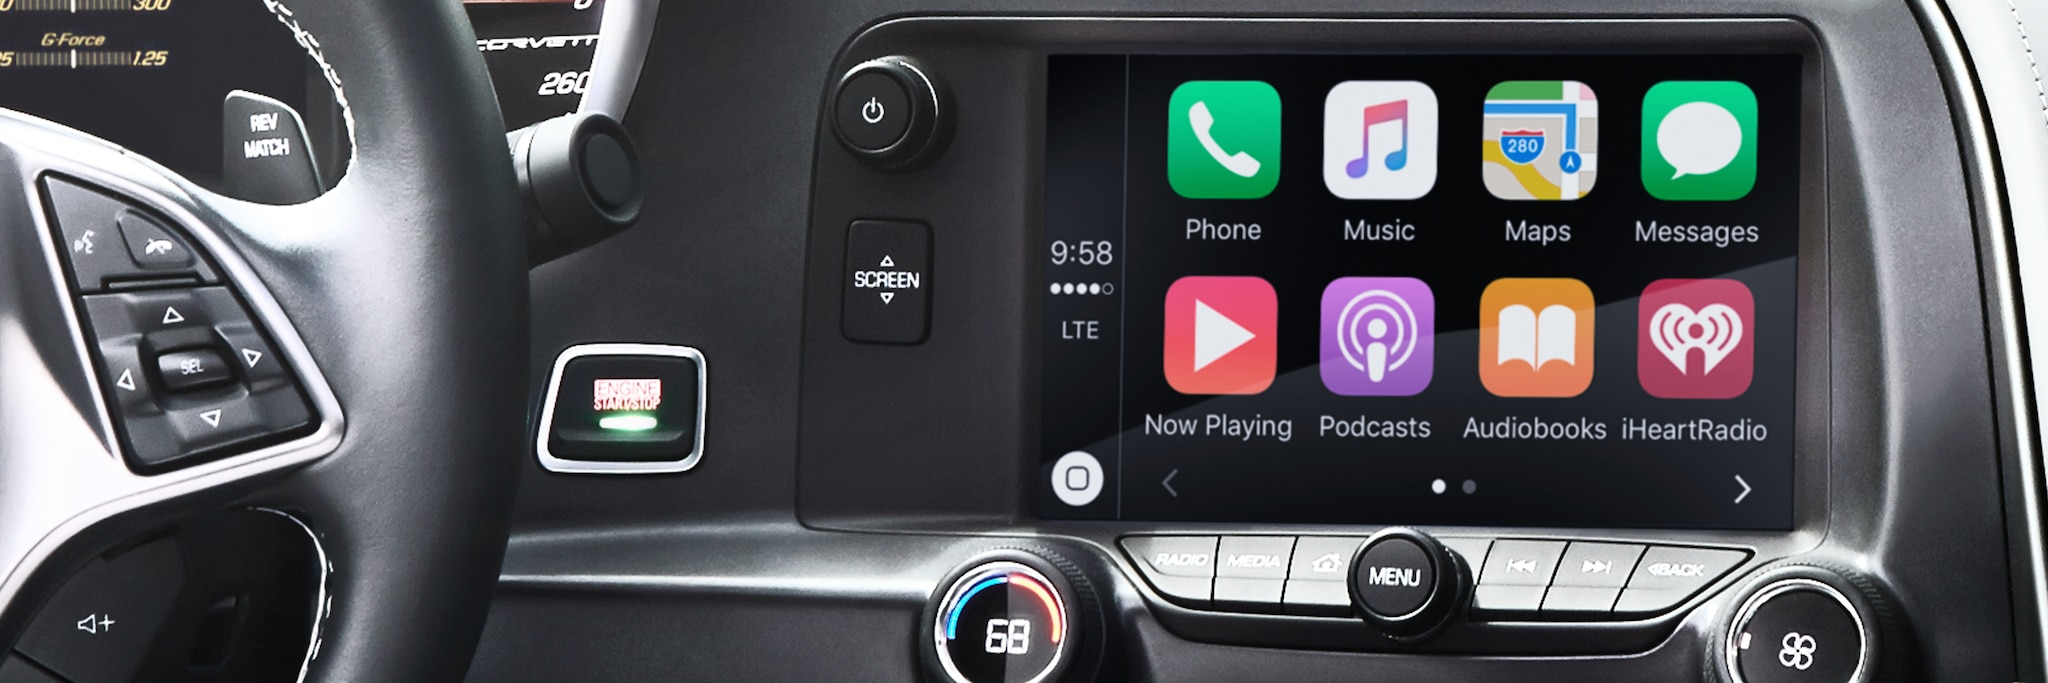 Apple CarPlay en el auto deportivo Chevrolet Corvette Grand Sport 2017